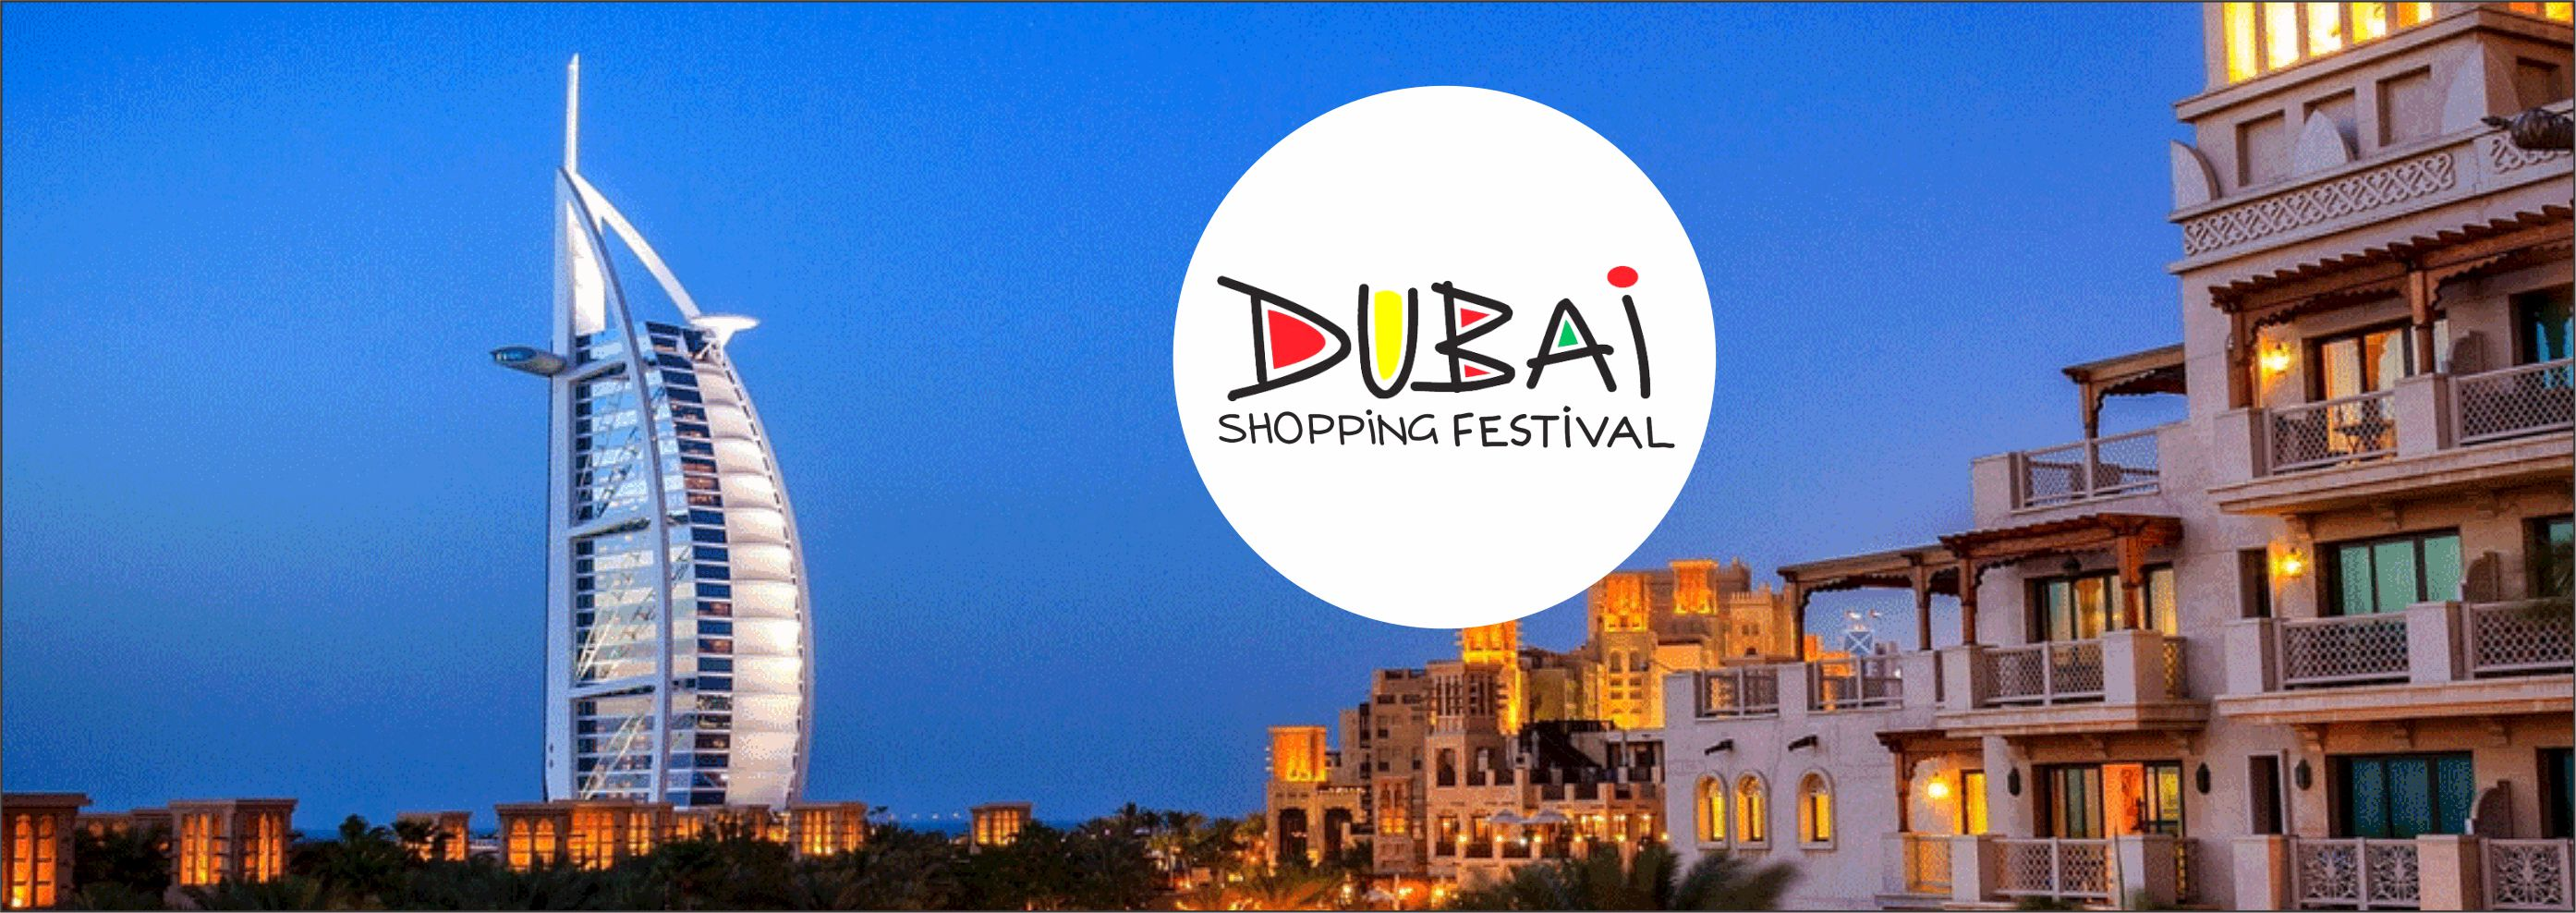 Dubai Shopping Festival 2018: Travel Packages and Offers